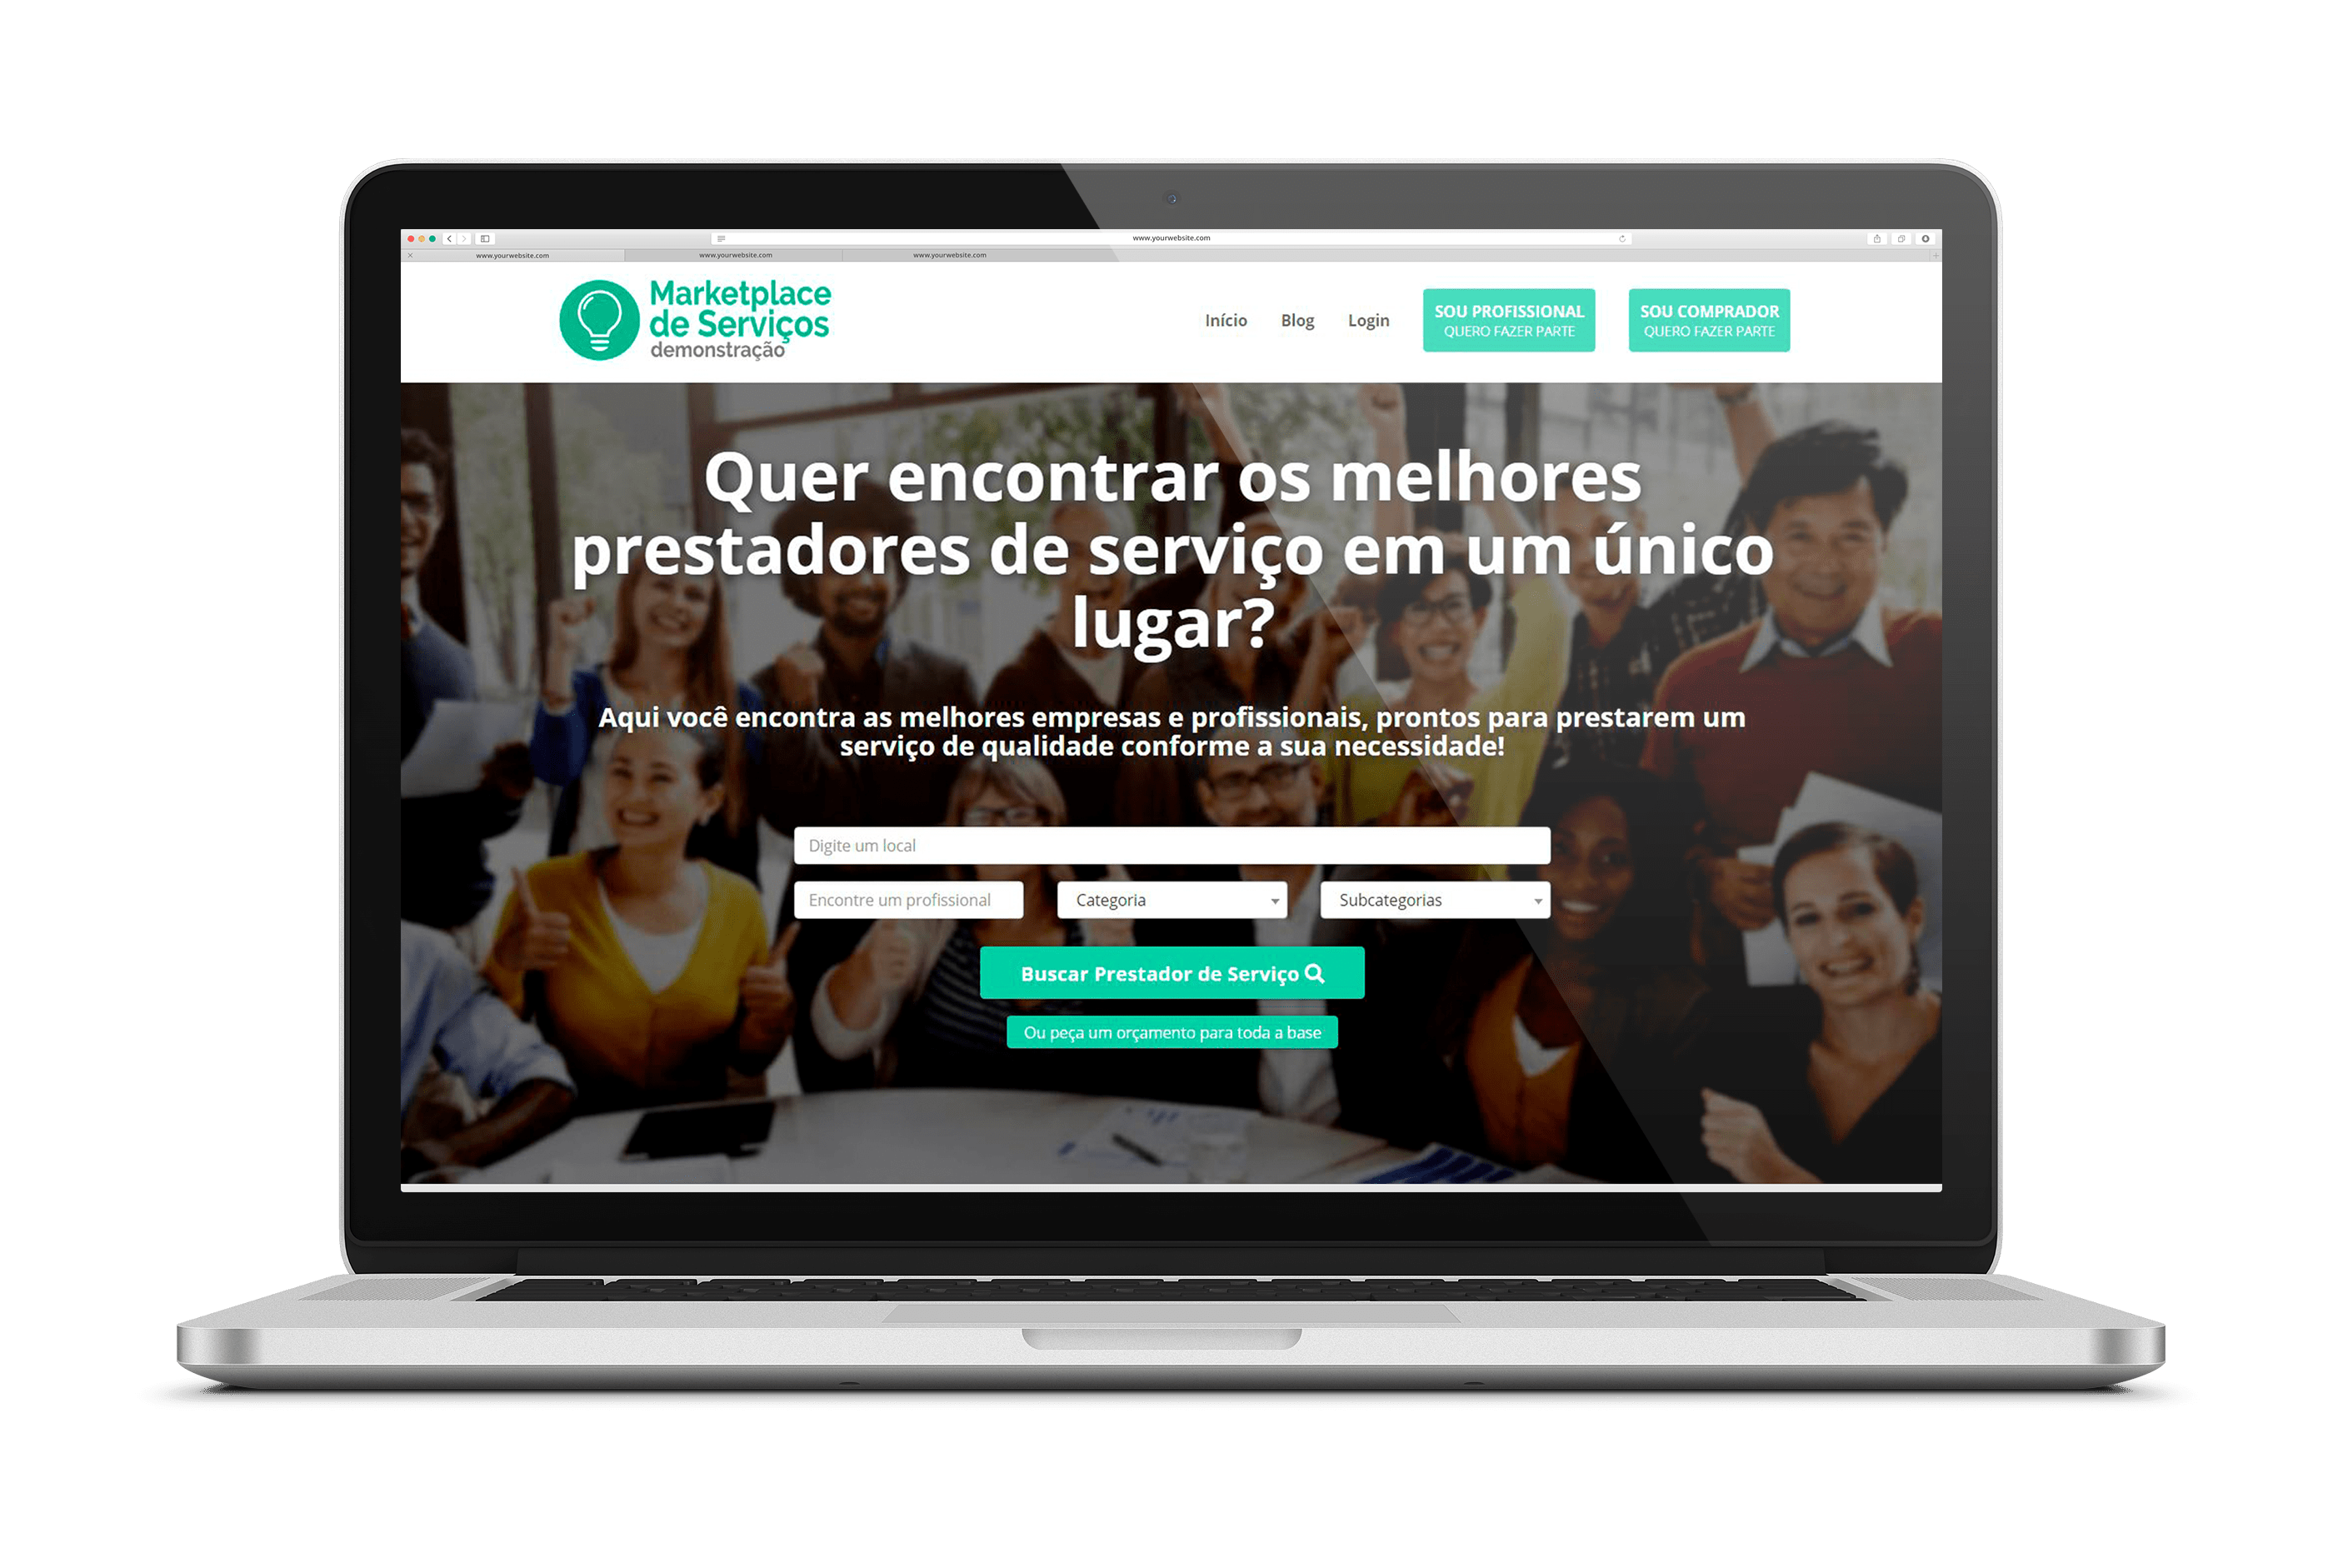 Marketplace_Servicos